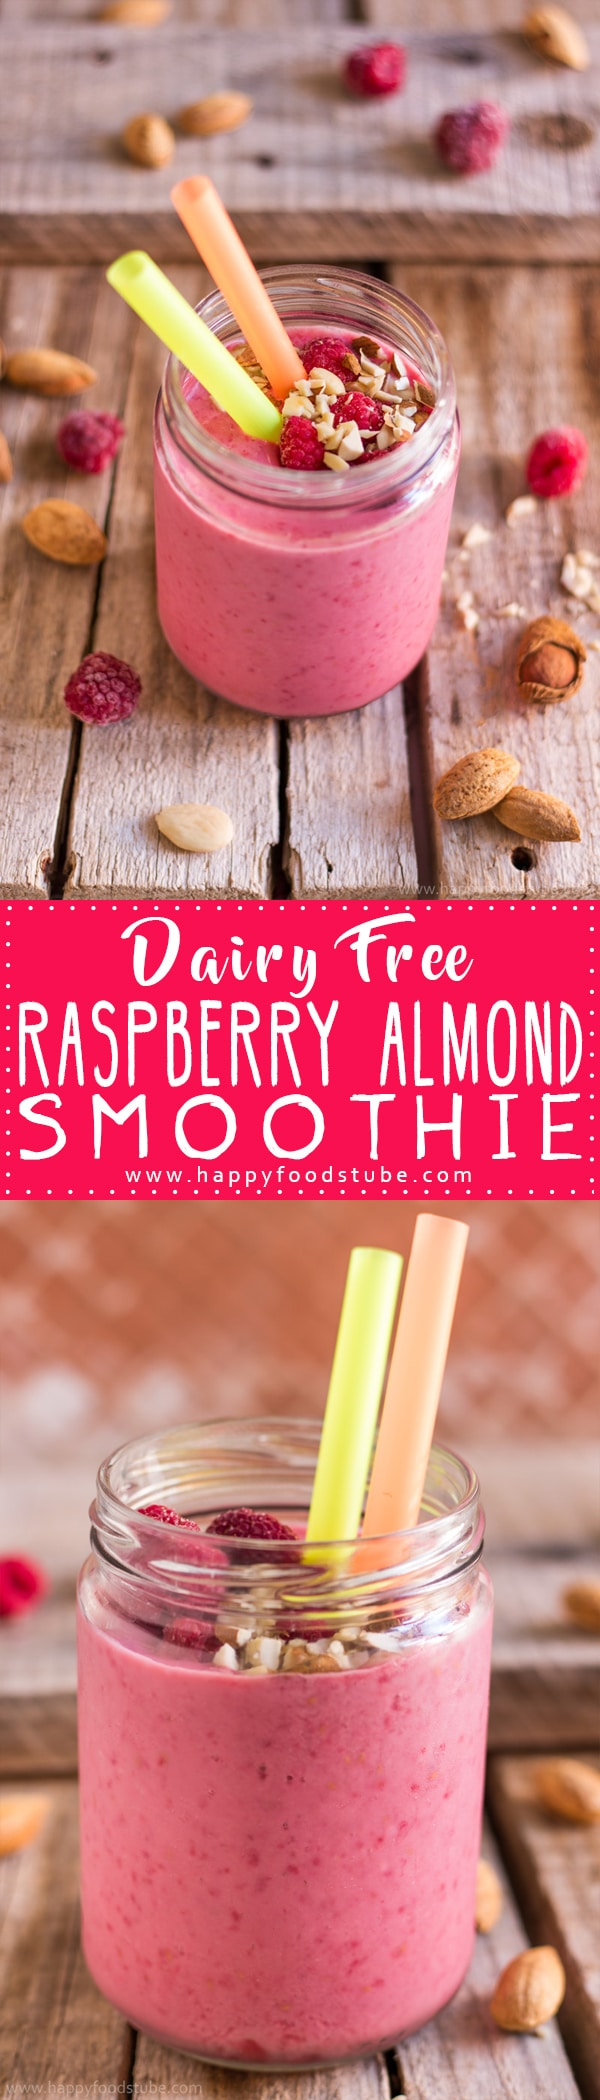 Raspberry Almond Smoothie is a great choice for those looking for dairy free alternatives but also for those who like almond milk or want to stay healthy! Only 4-ingredients and ready in 5-minutes. | happyfoodstube.com